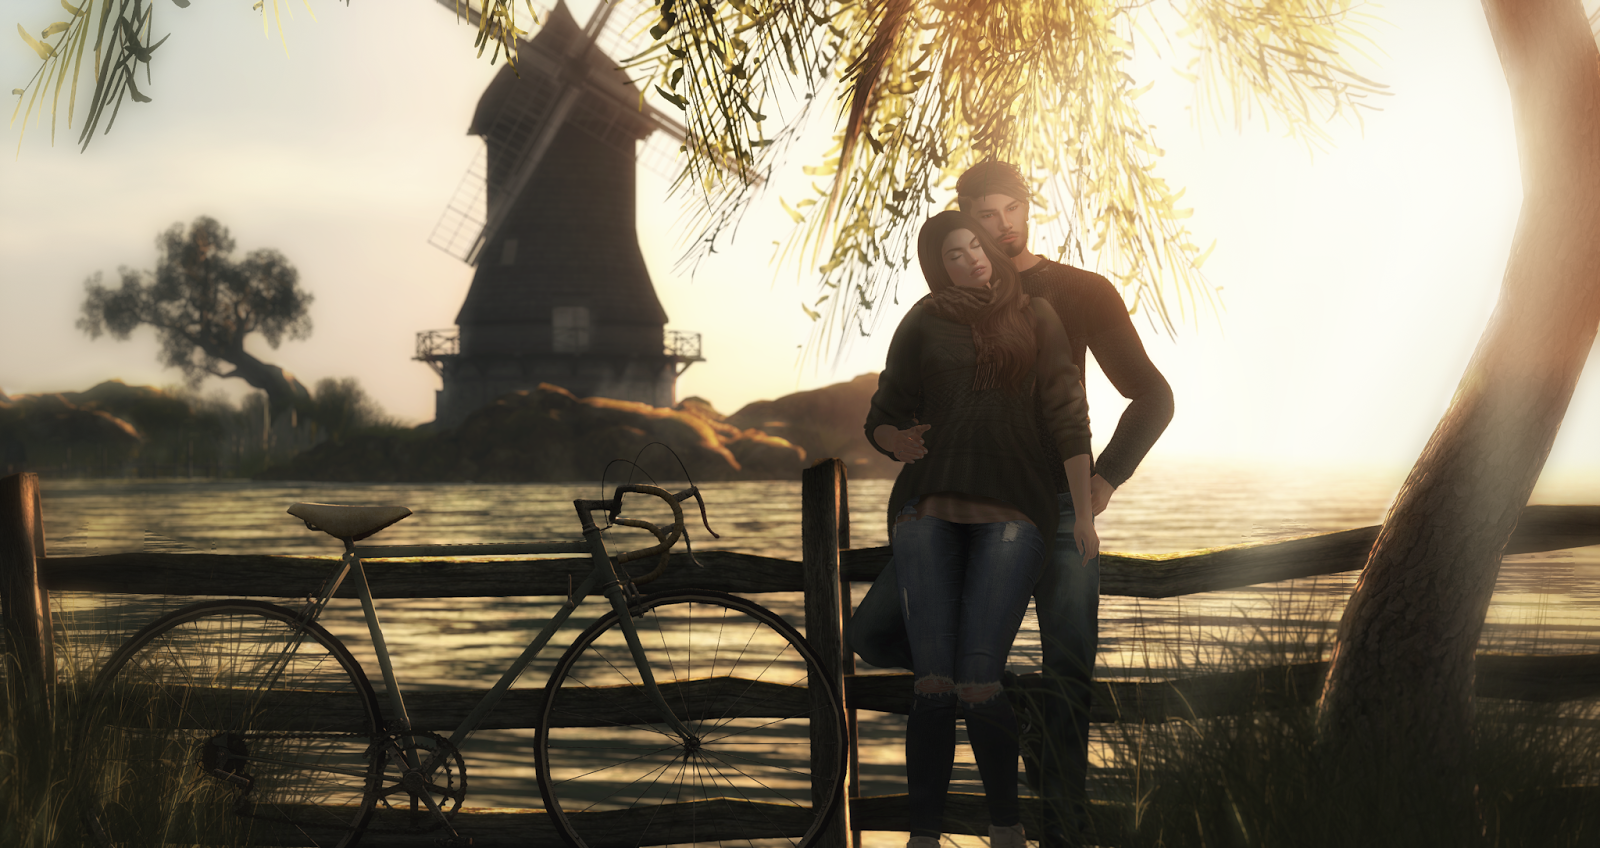 #secondlife # Whimberly